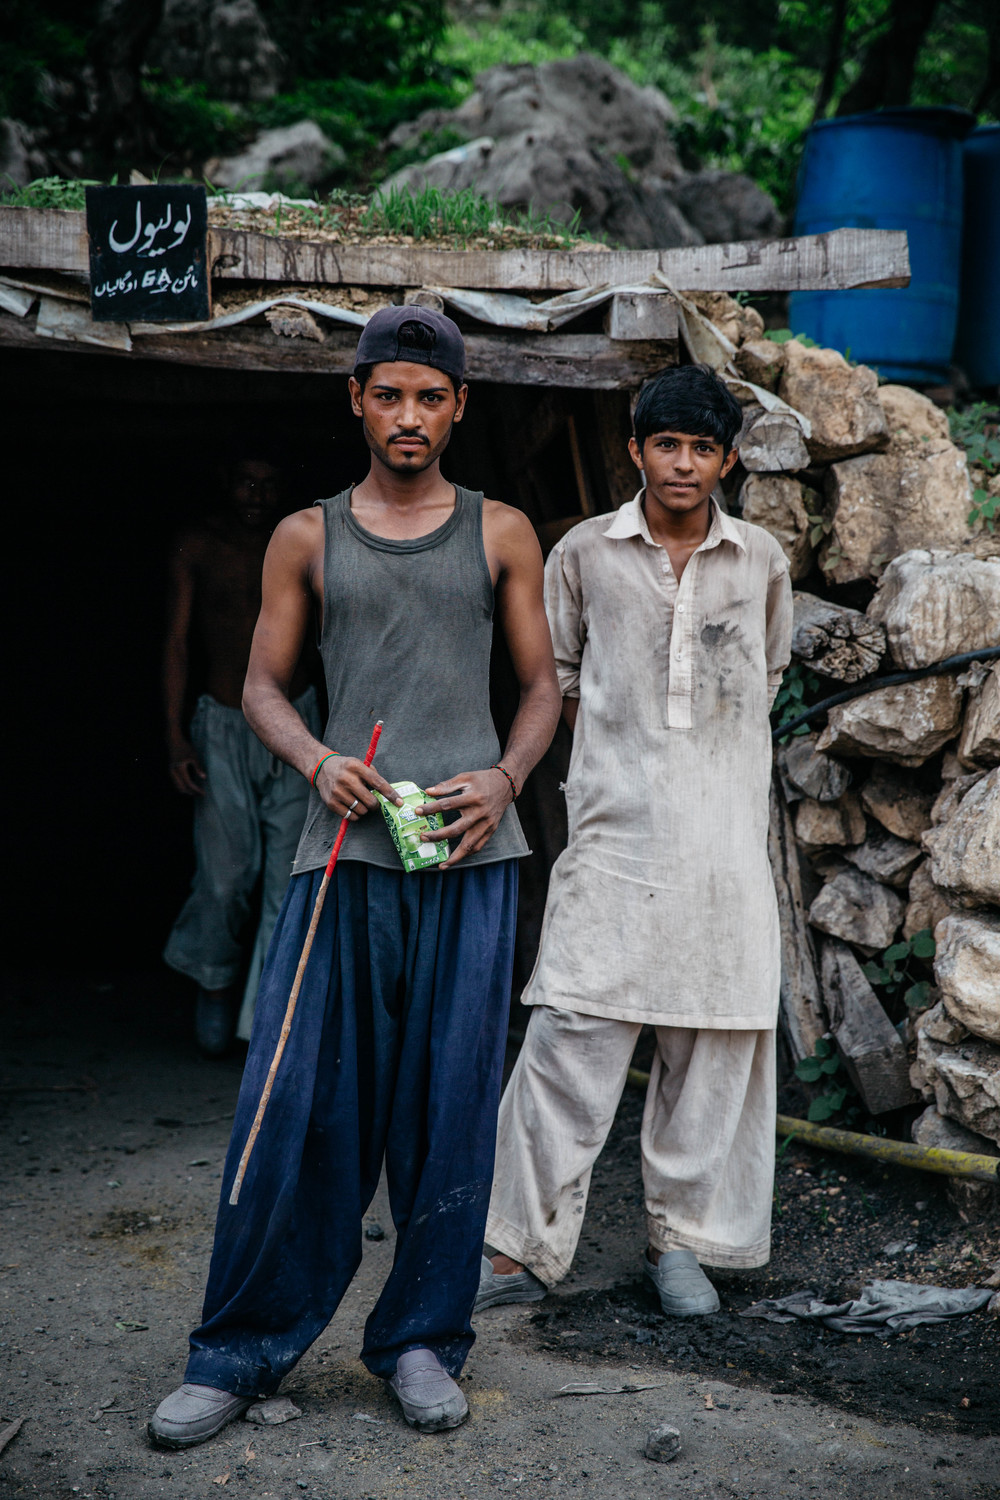 Working as a photographer overseas, Pakistan